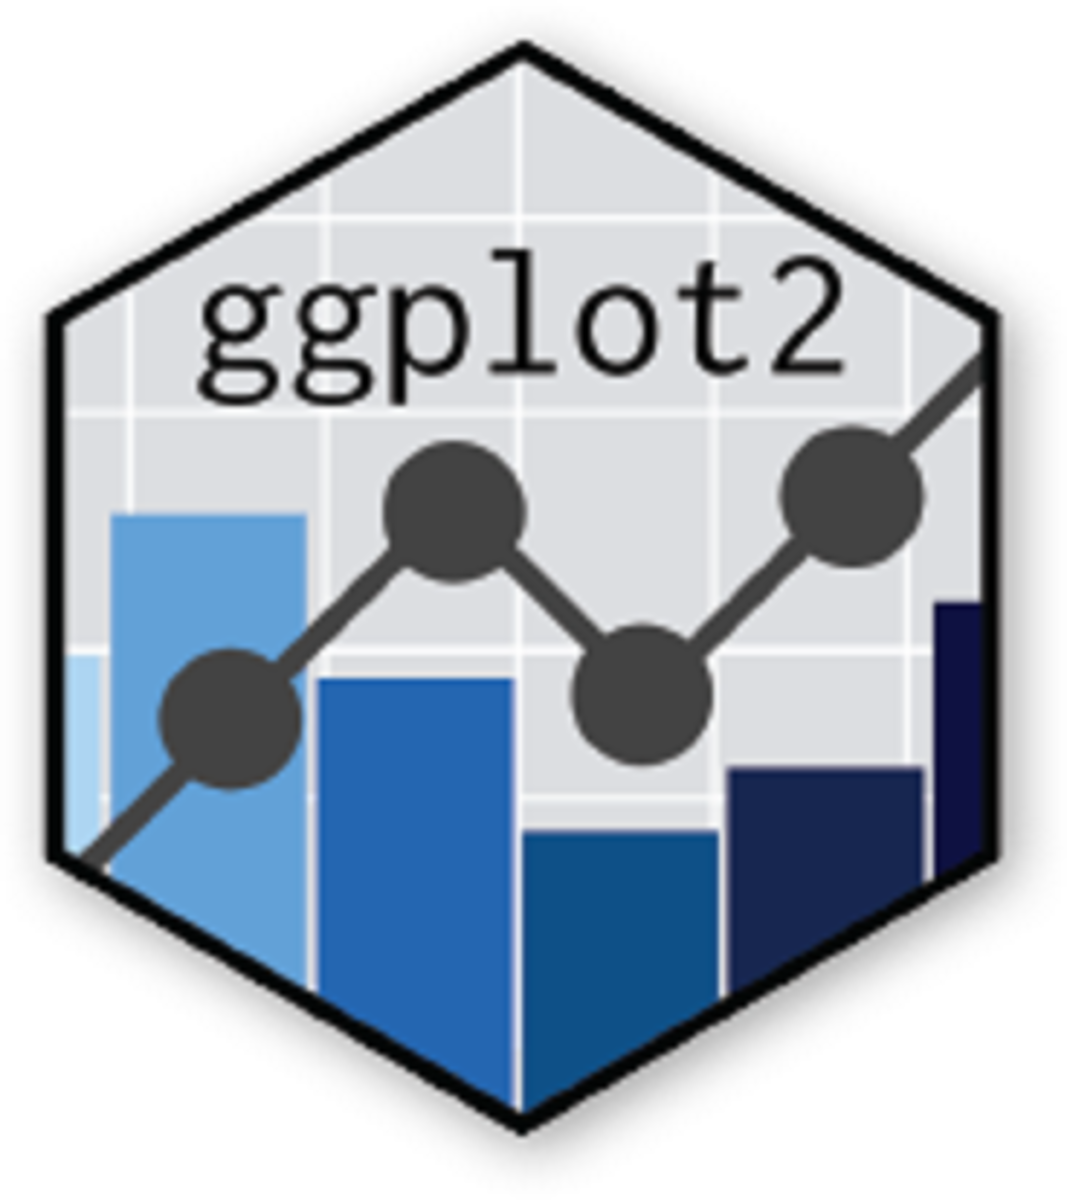 ggplot2 Package